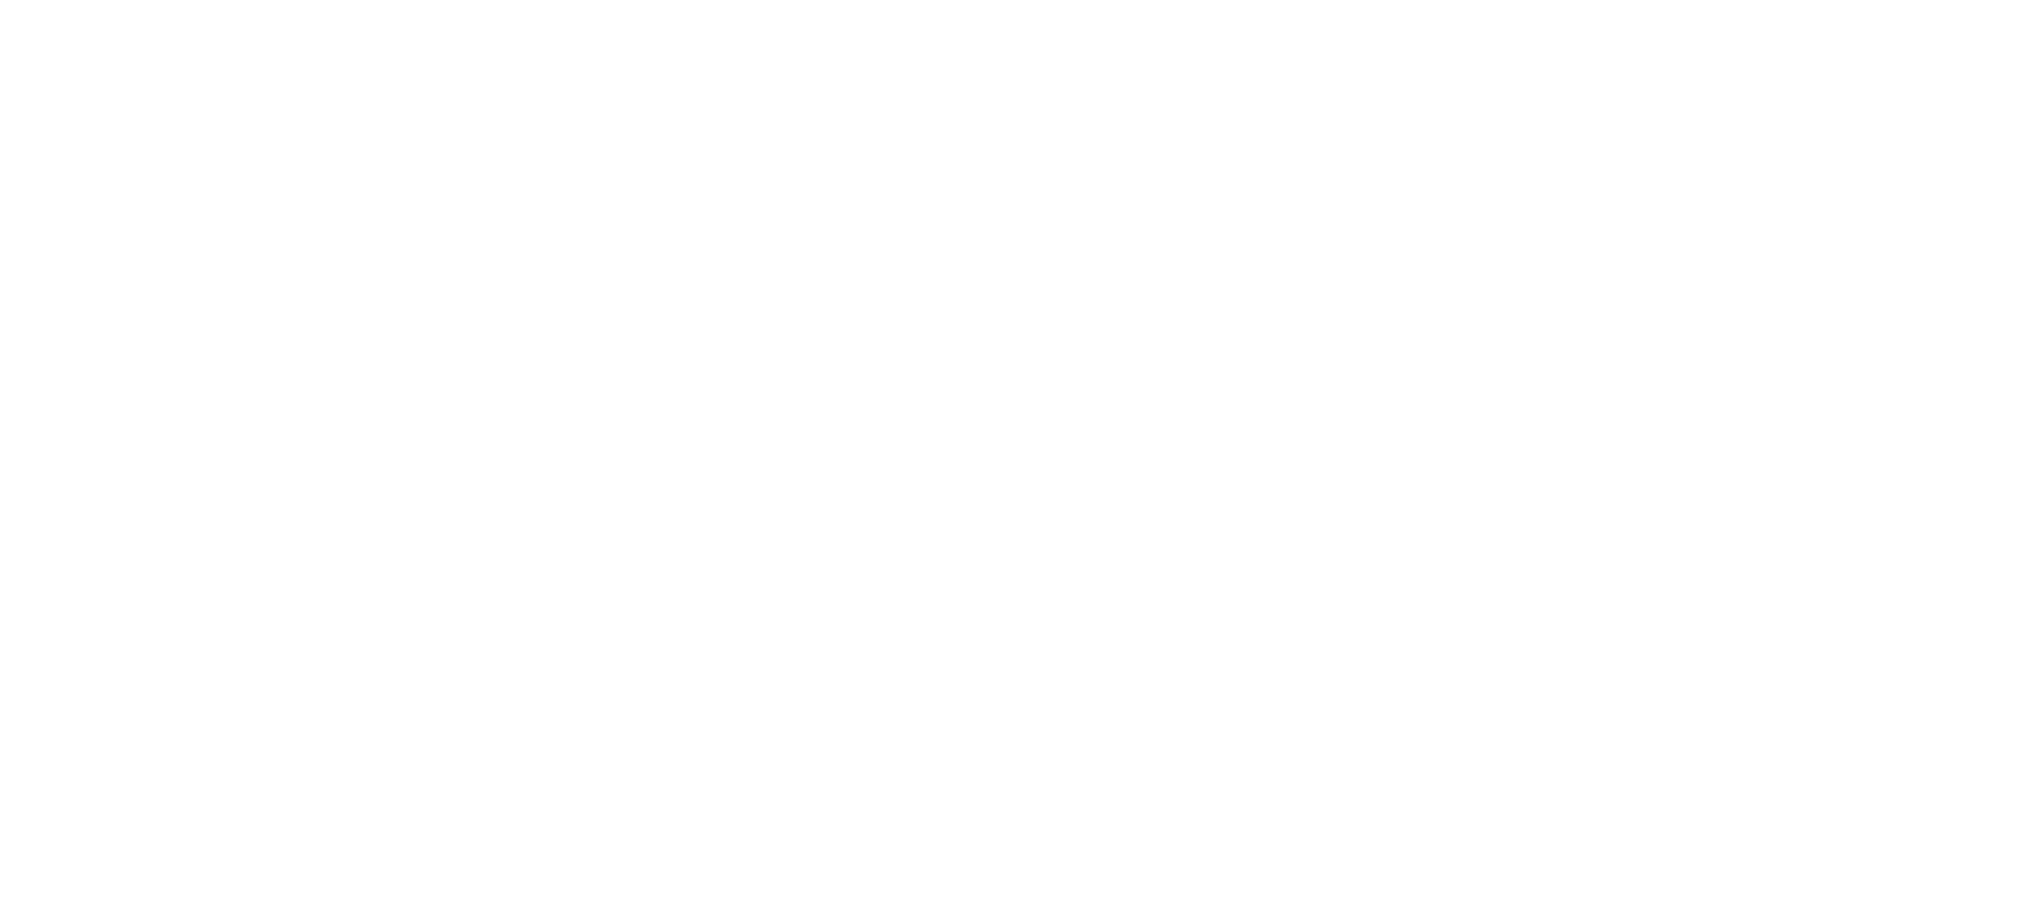 D & D Piano Service - Tucson Piano Tuning